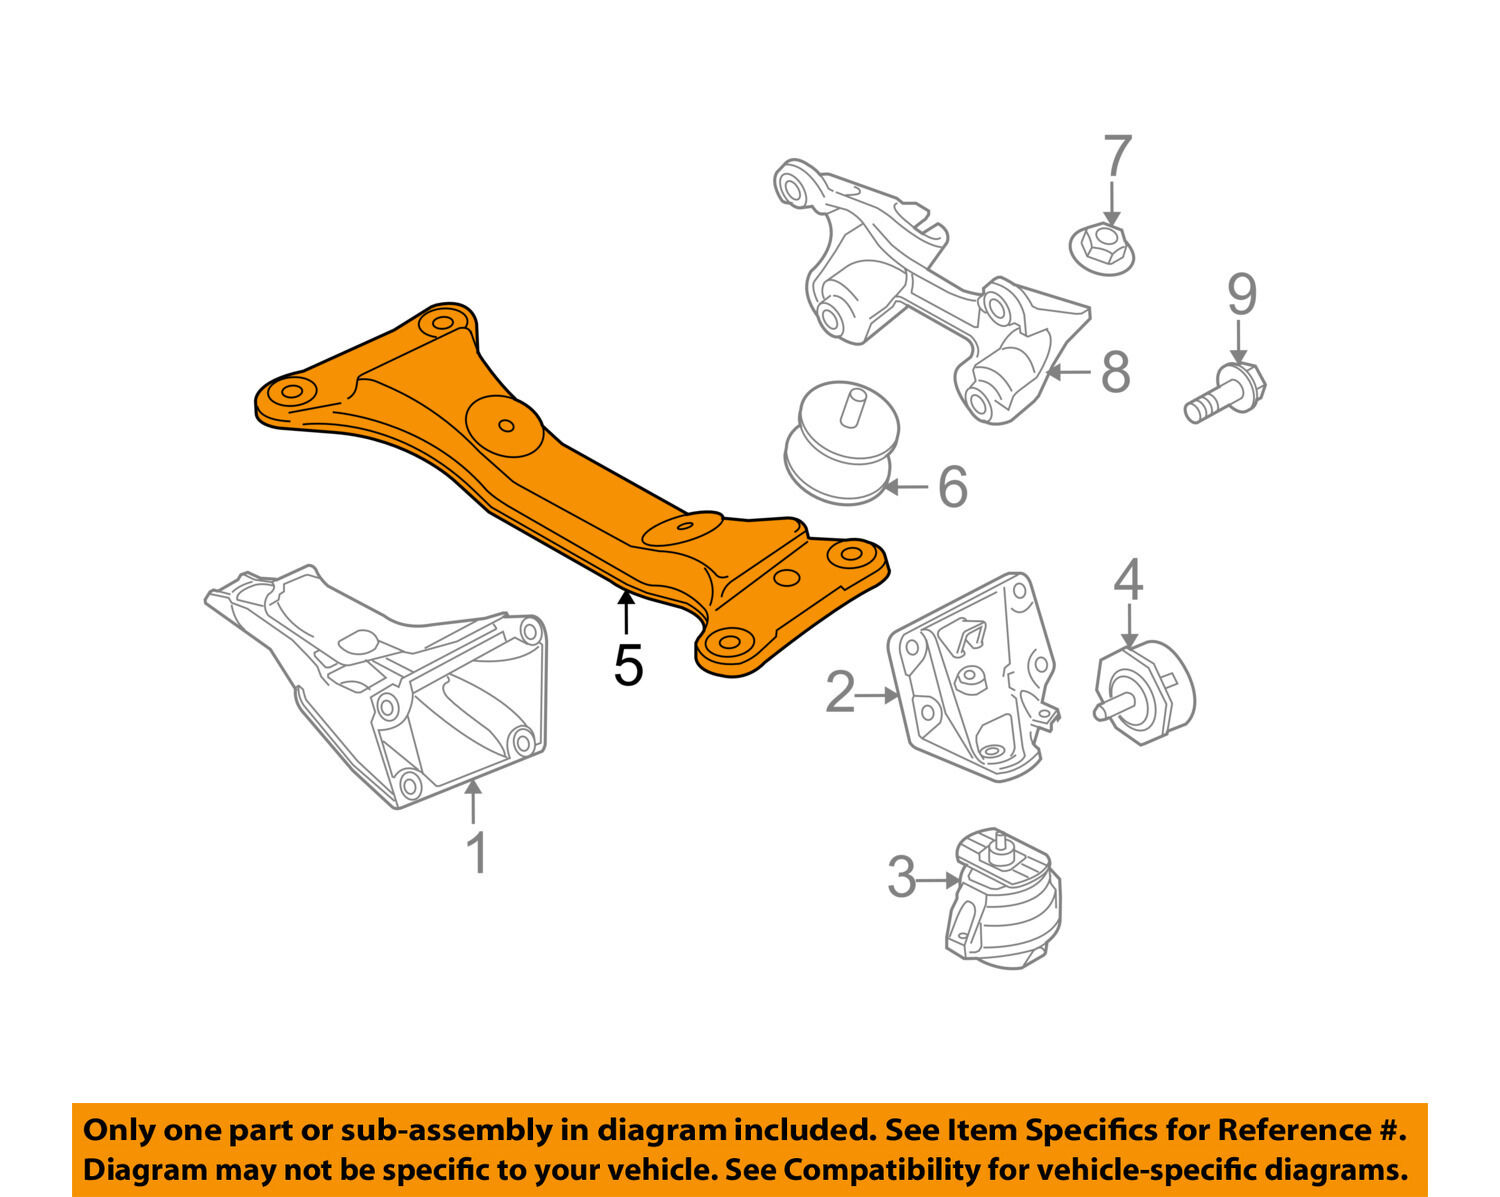 Bmw Oem 09 11 335d Transmission Trans Mount 22326778060 5171 Wiring Diagram 1 Of 1only Available